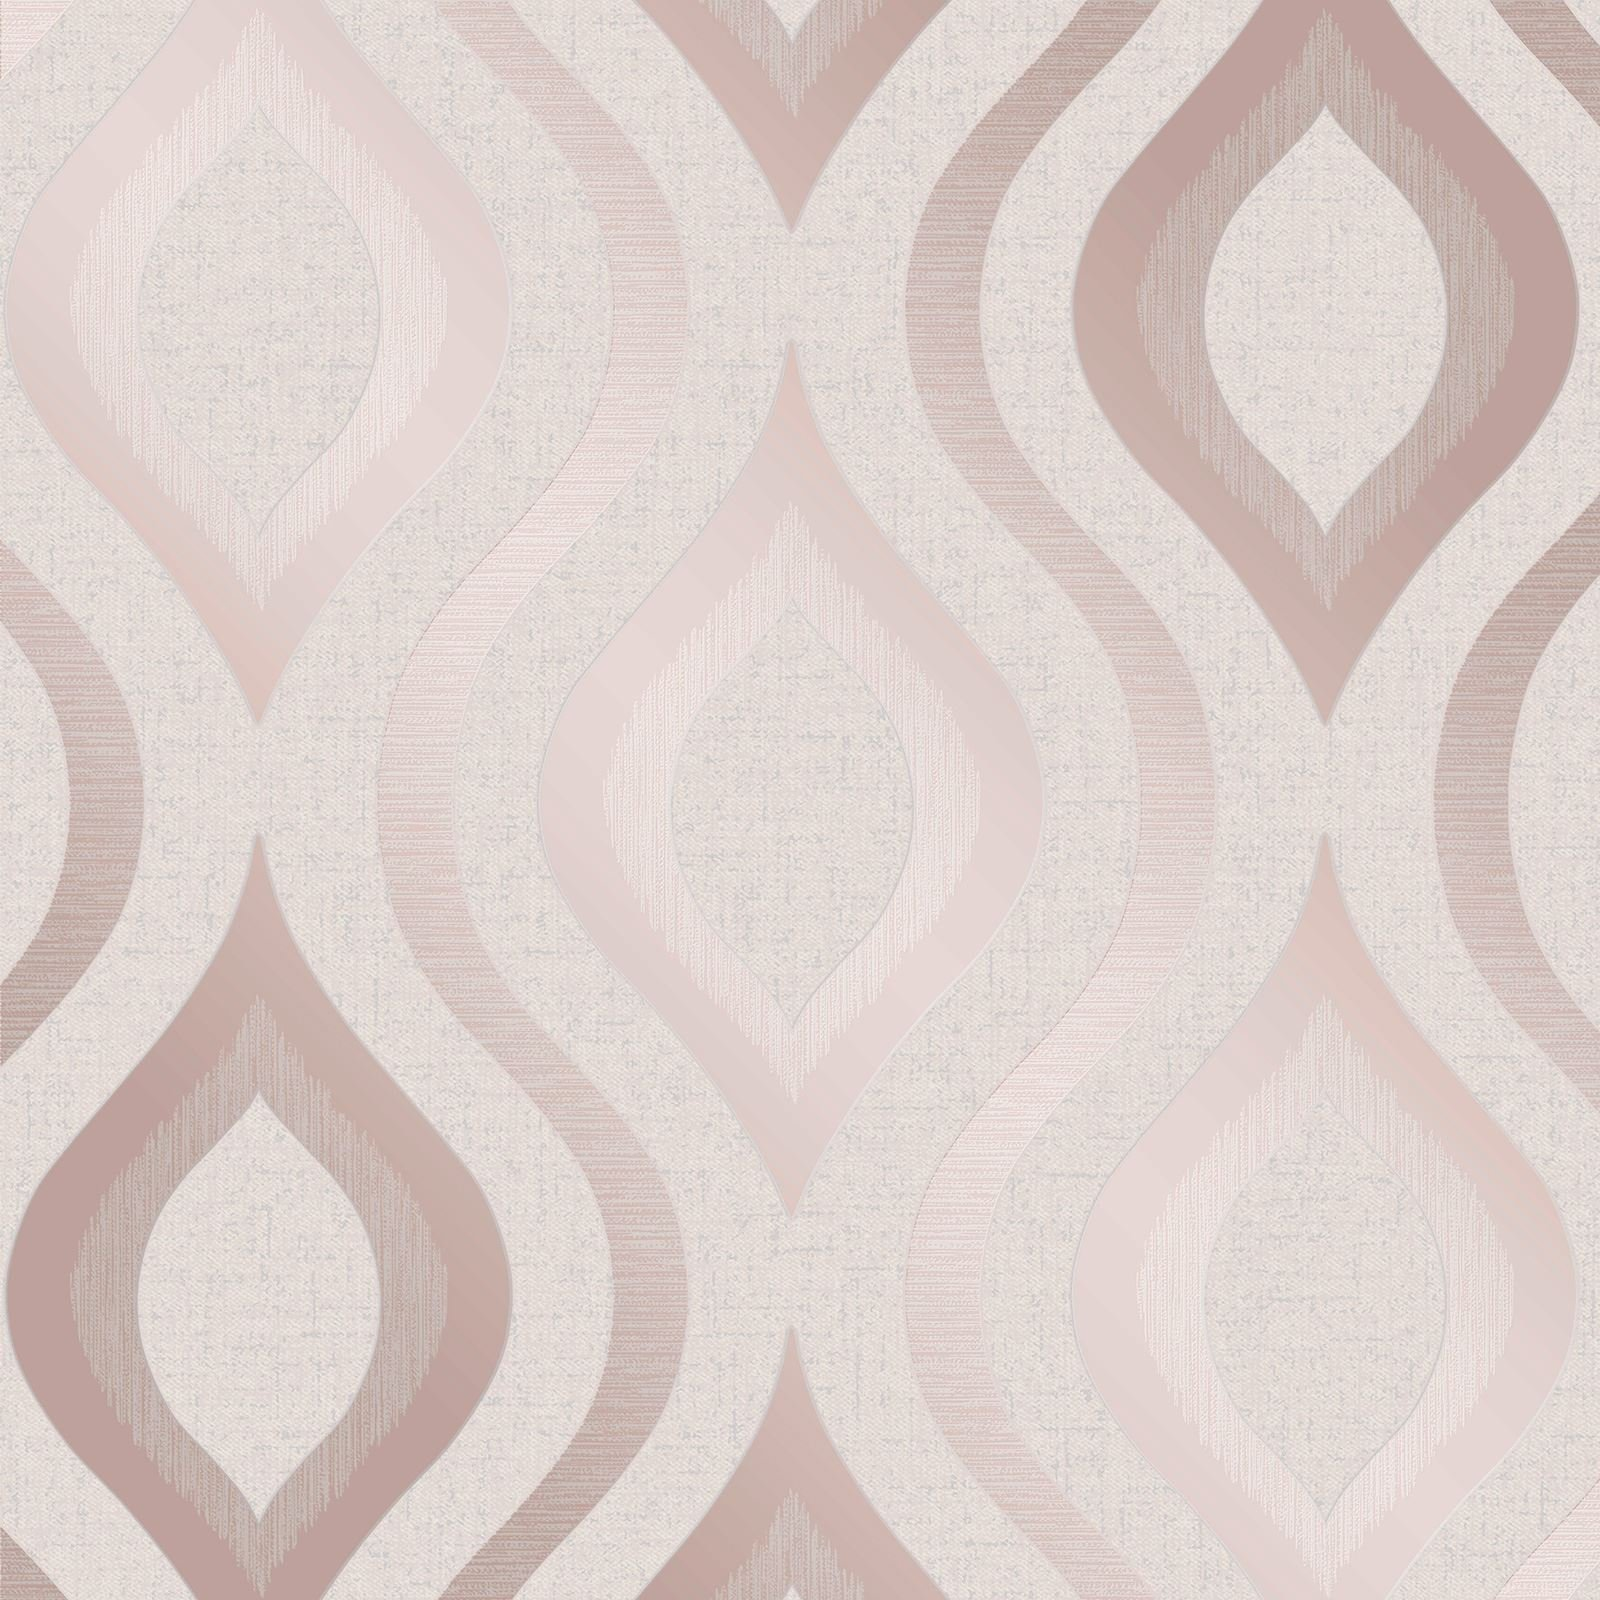 Quartz Geometric Wallpaper Rose Gold Fine Decor FD42206